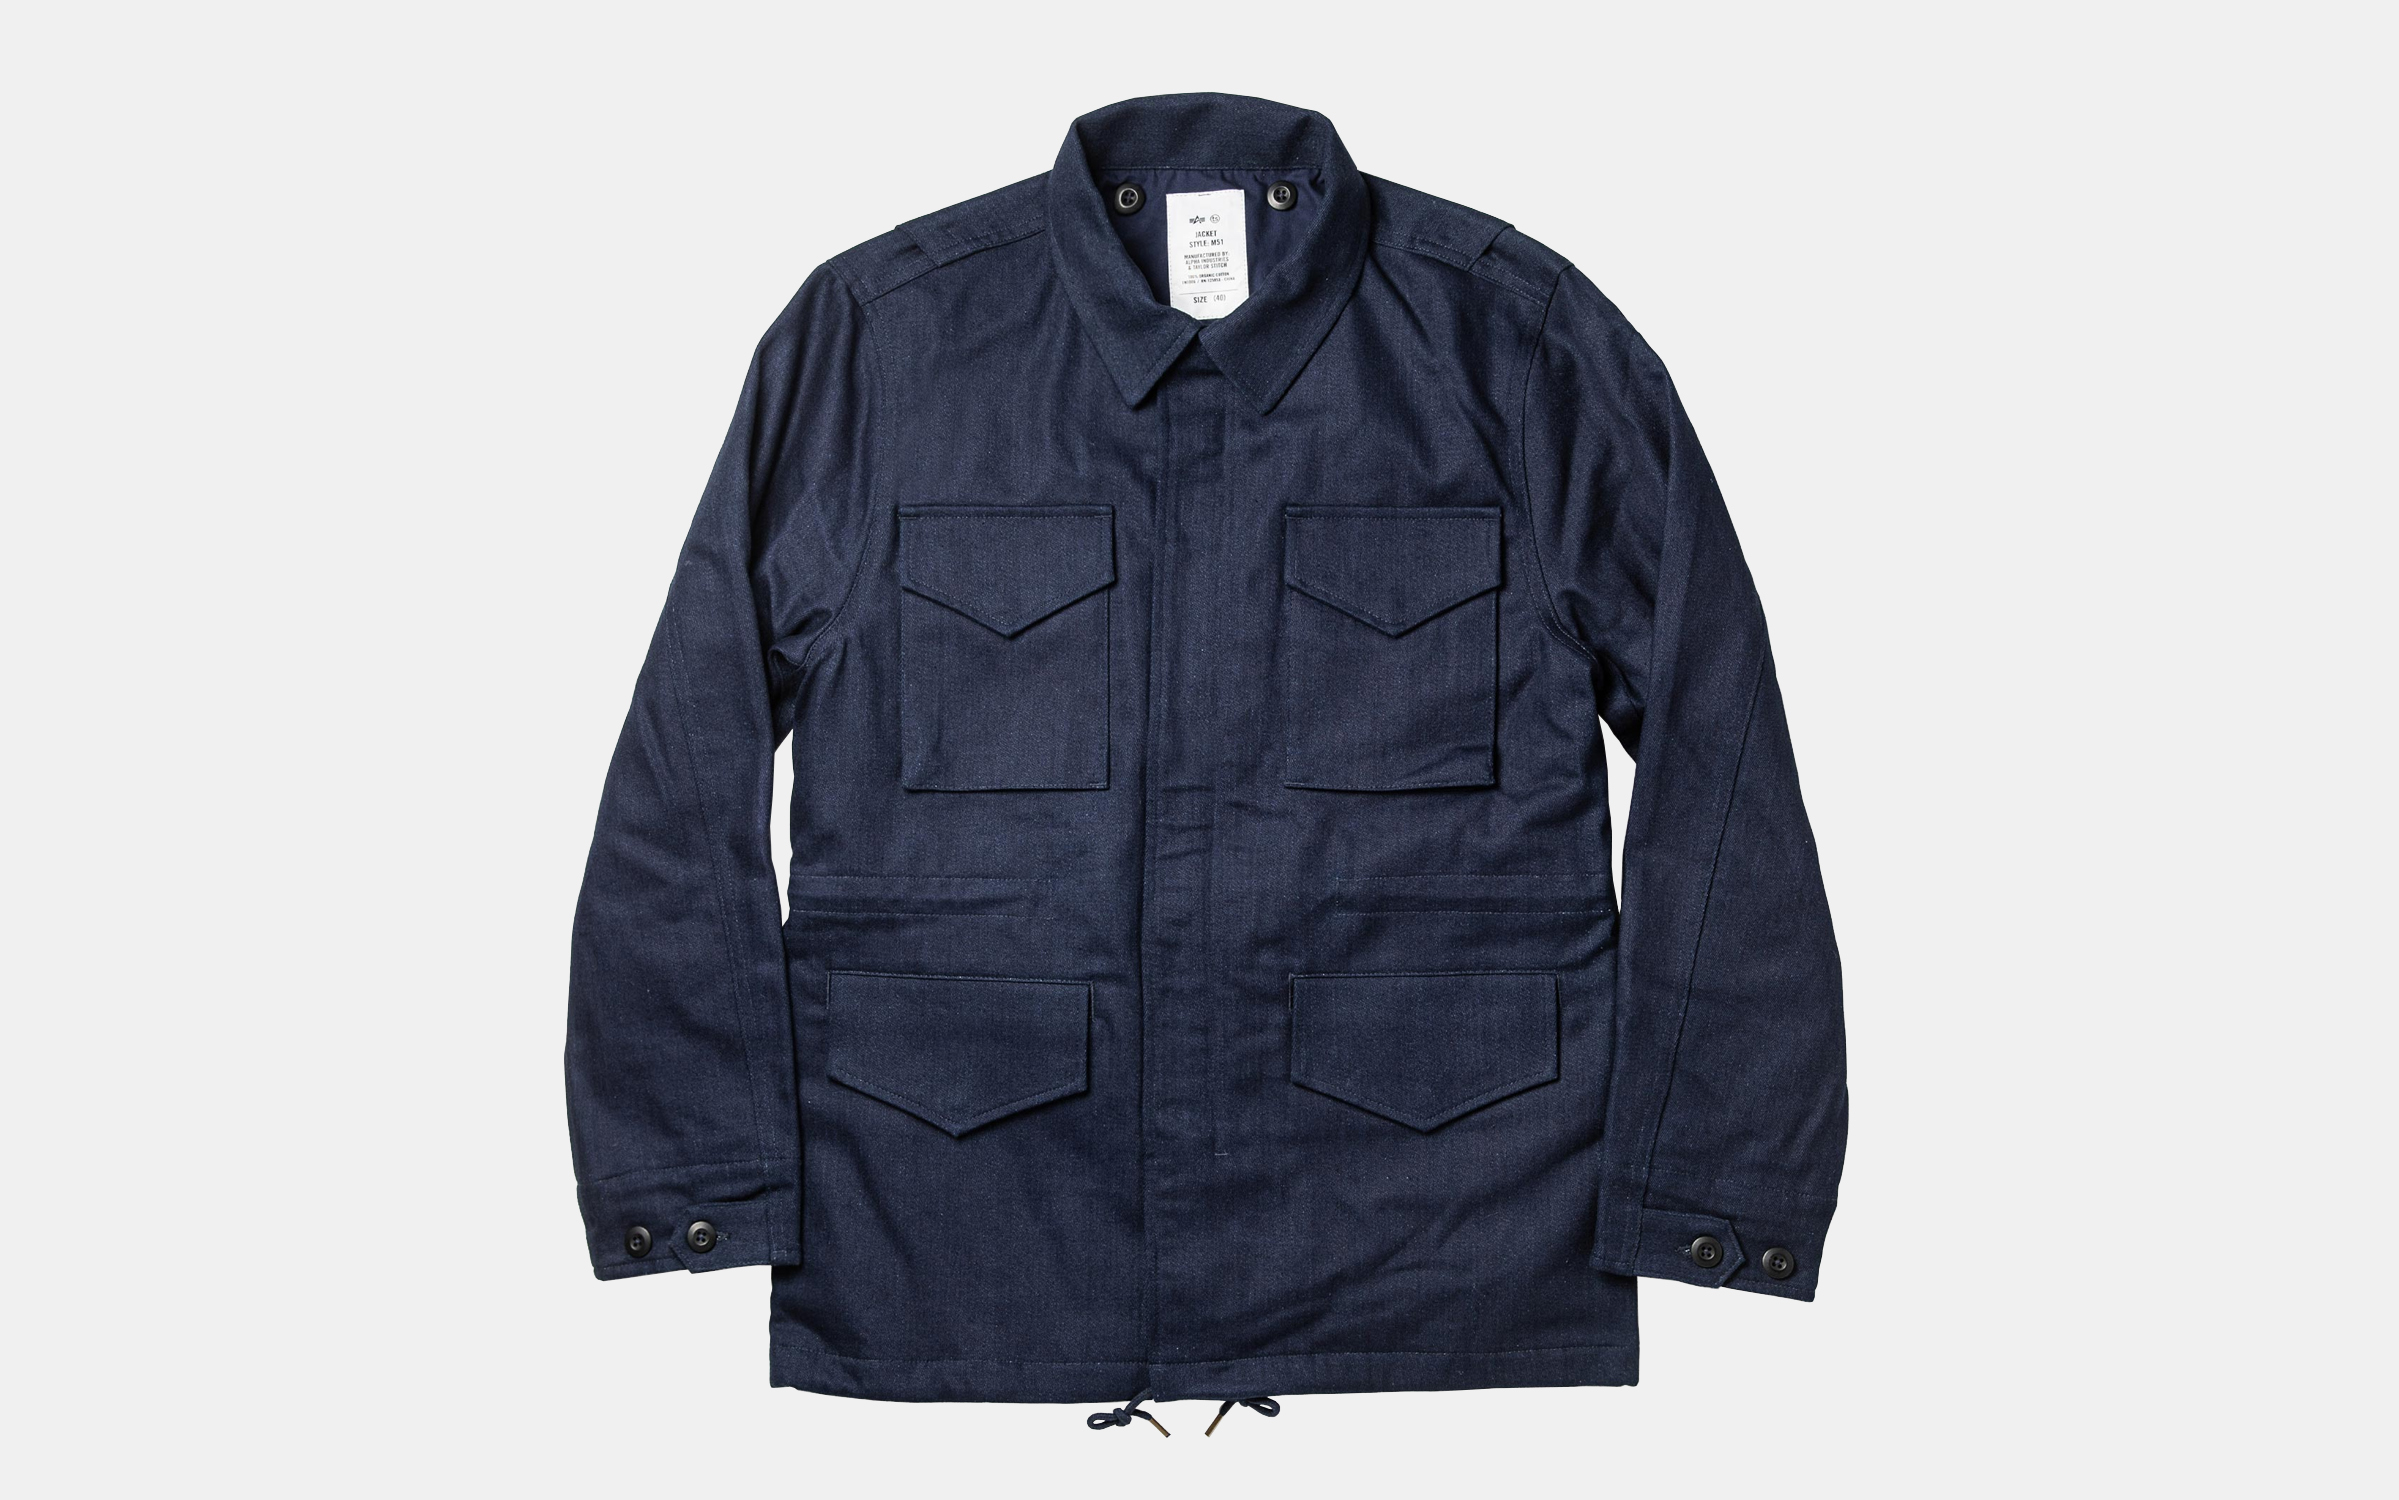 Taylor Stitch x Alpha Industries M-51 Jacket